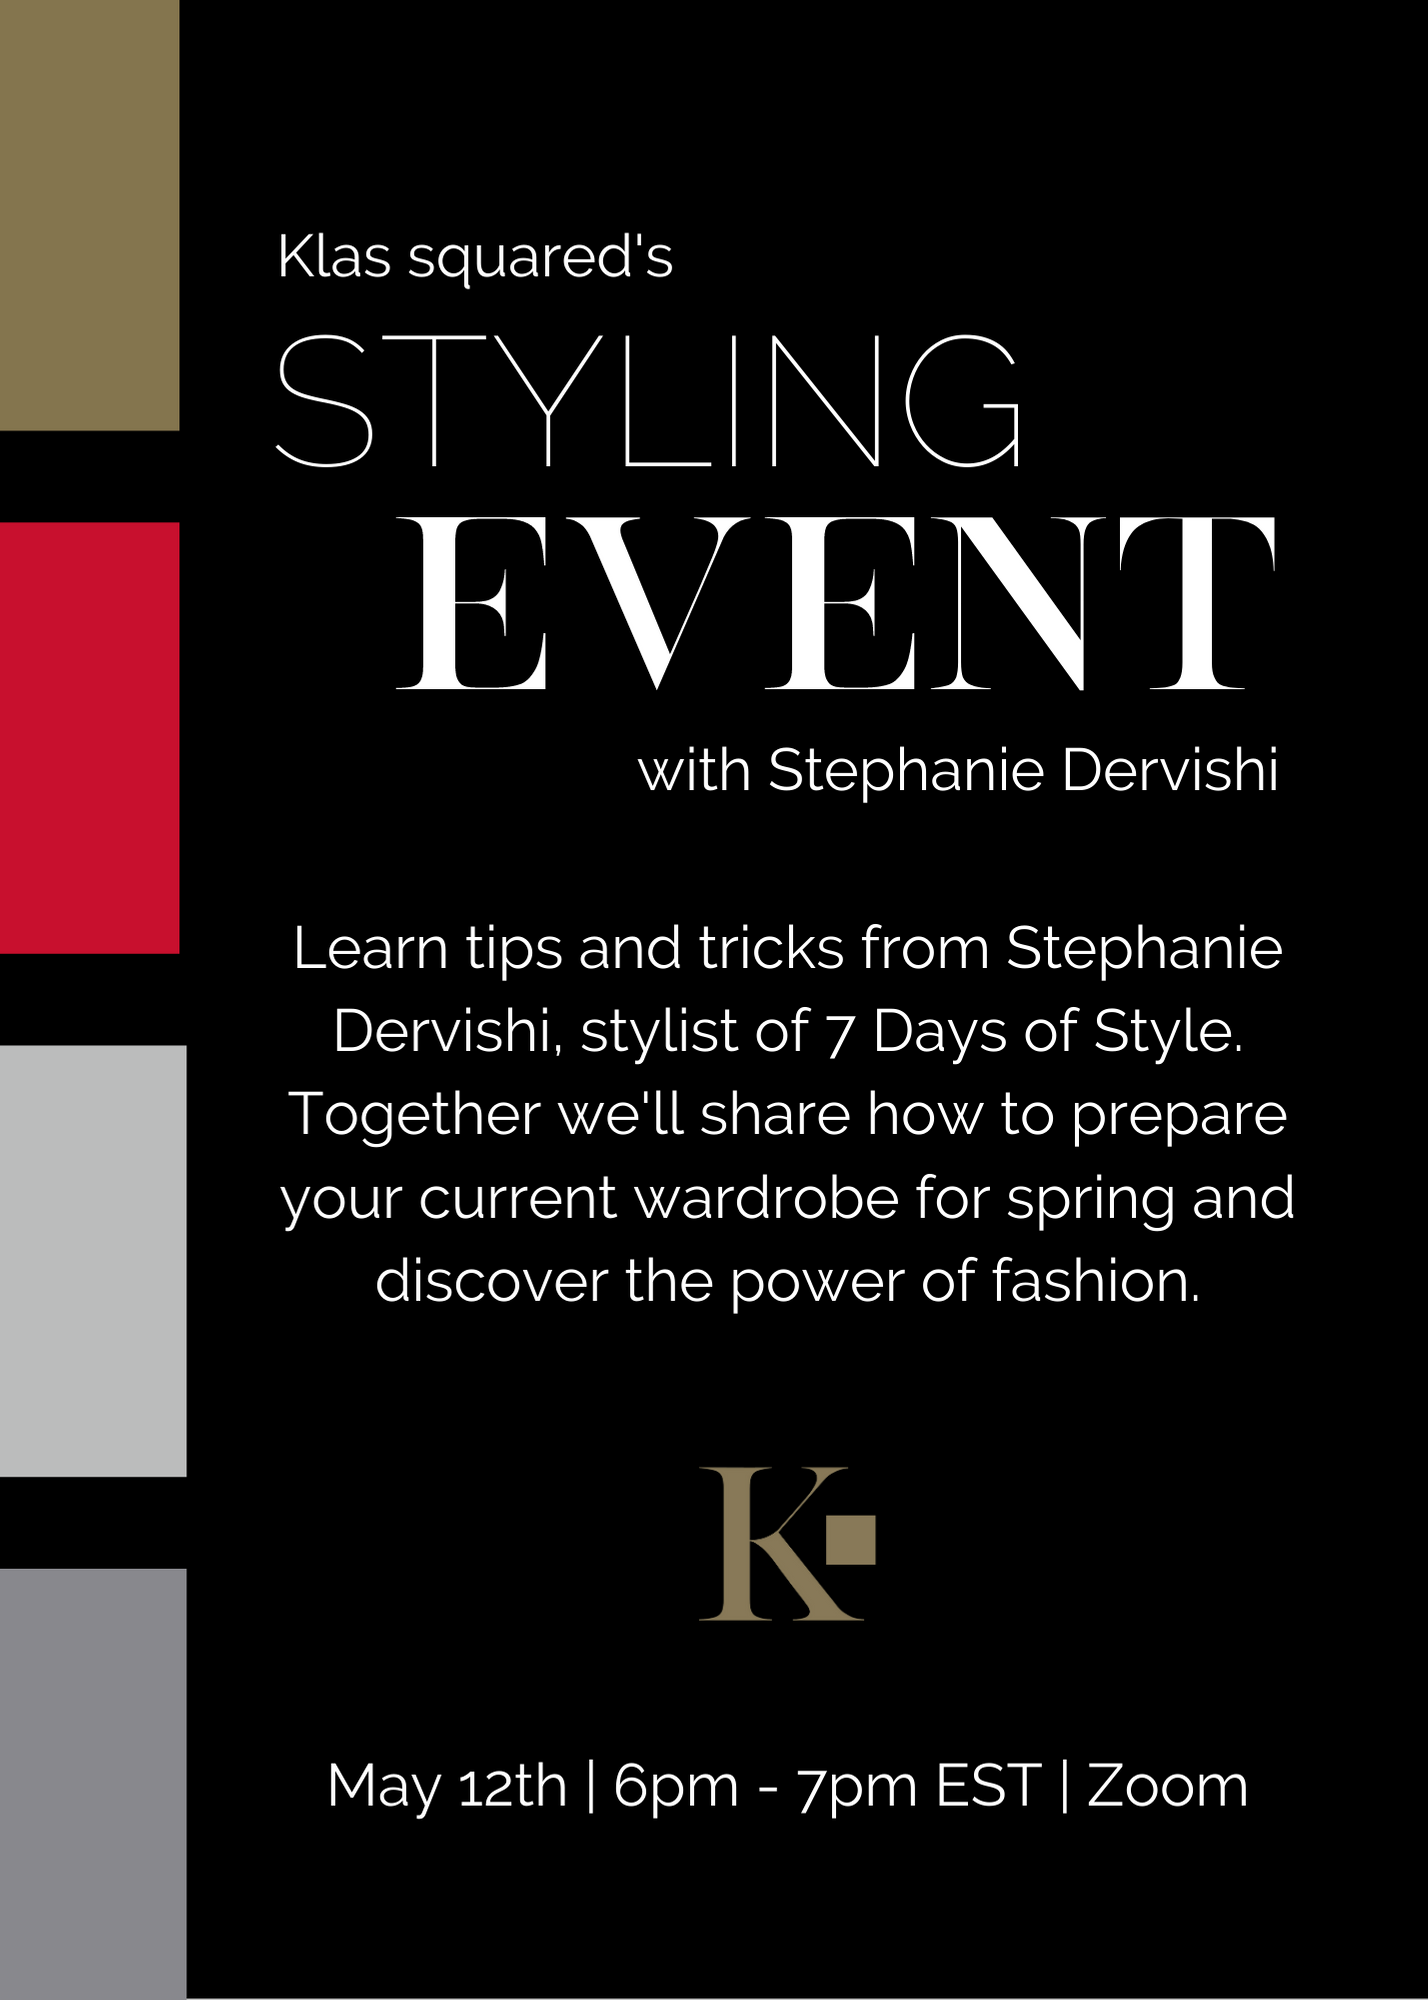 Klas squared invitation to styling event